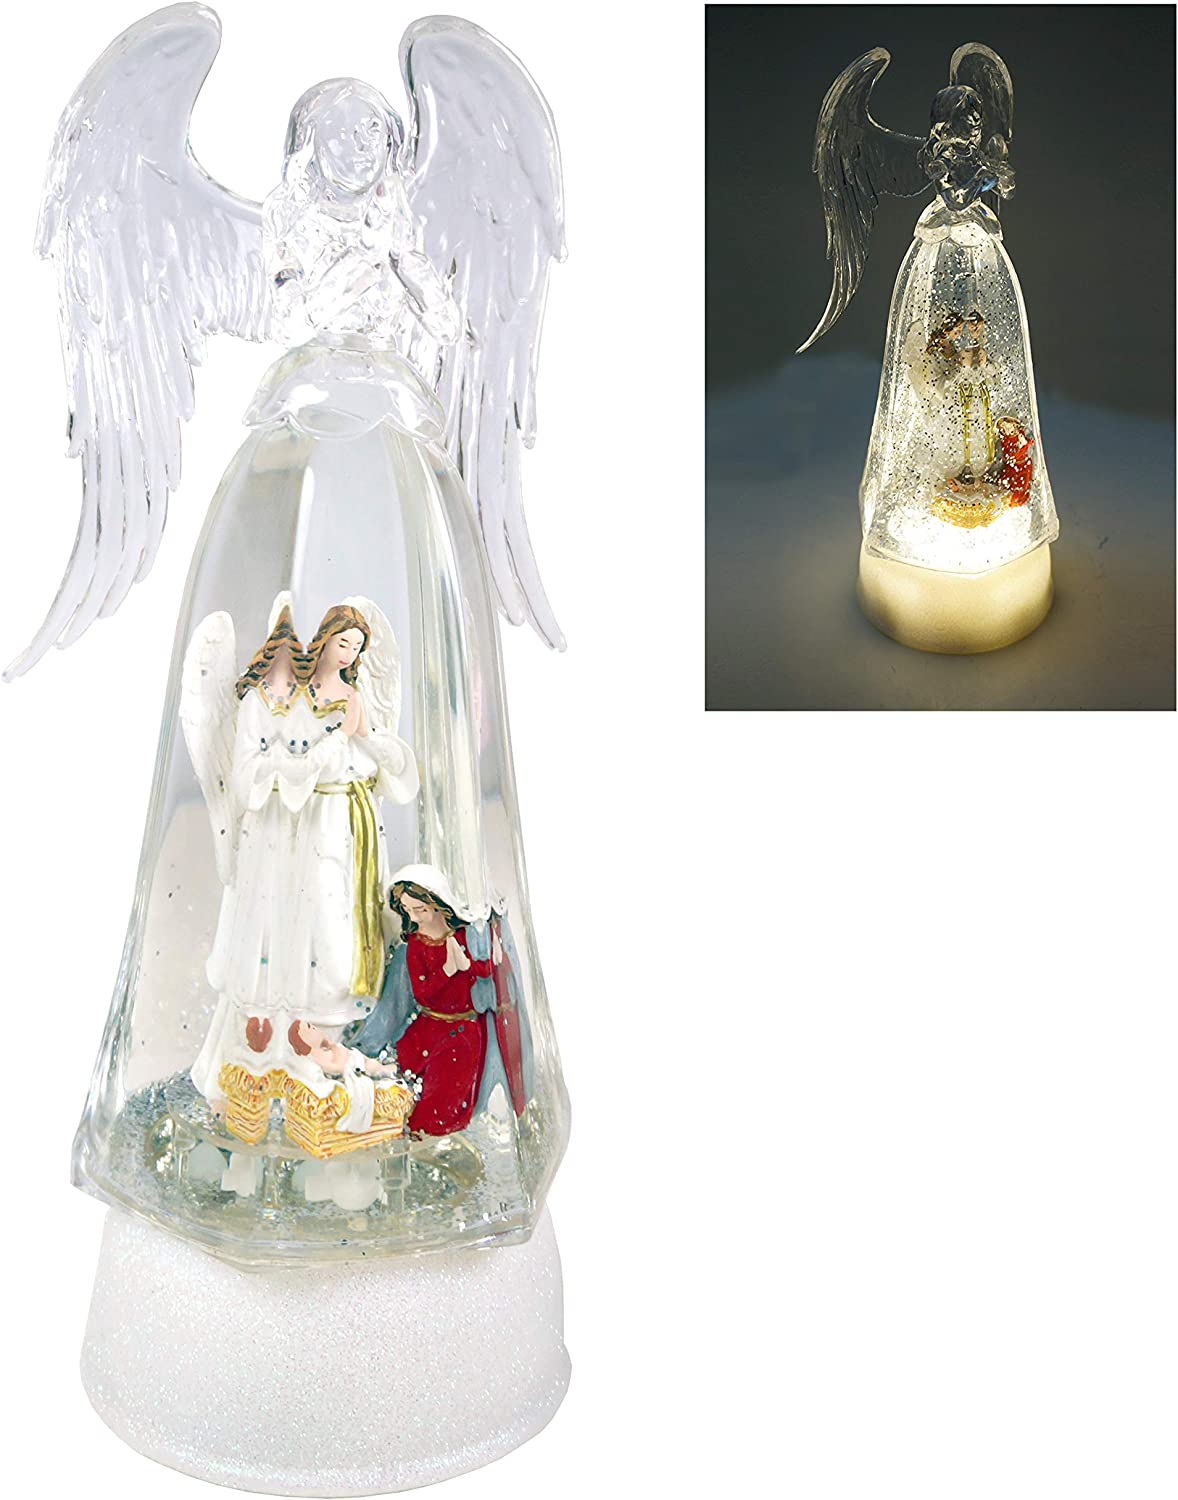 Kuda Moda Nativity Christmas Snow Globe, LED Angel Style with Angel, Baby Jesus & Mary, Battery Operated Swirling Glitter Water for Holiday Season Home Decor